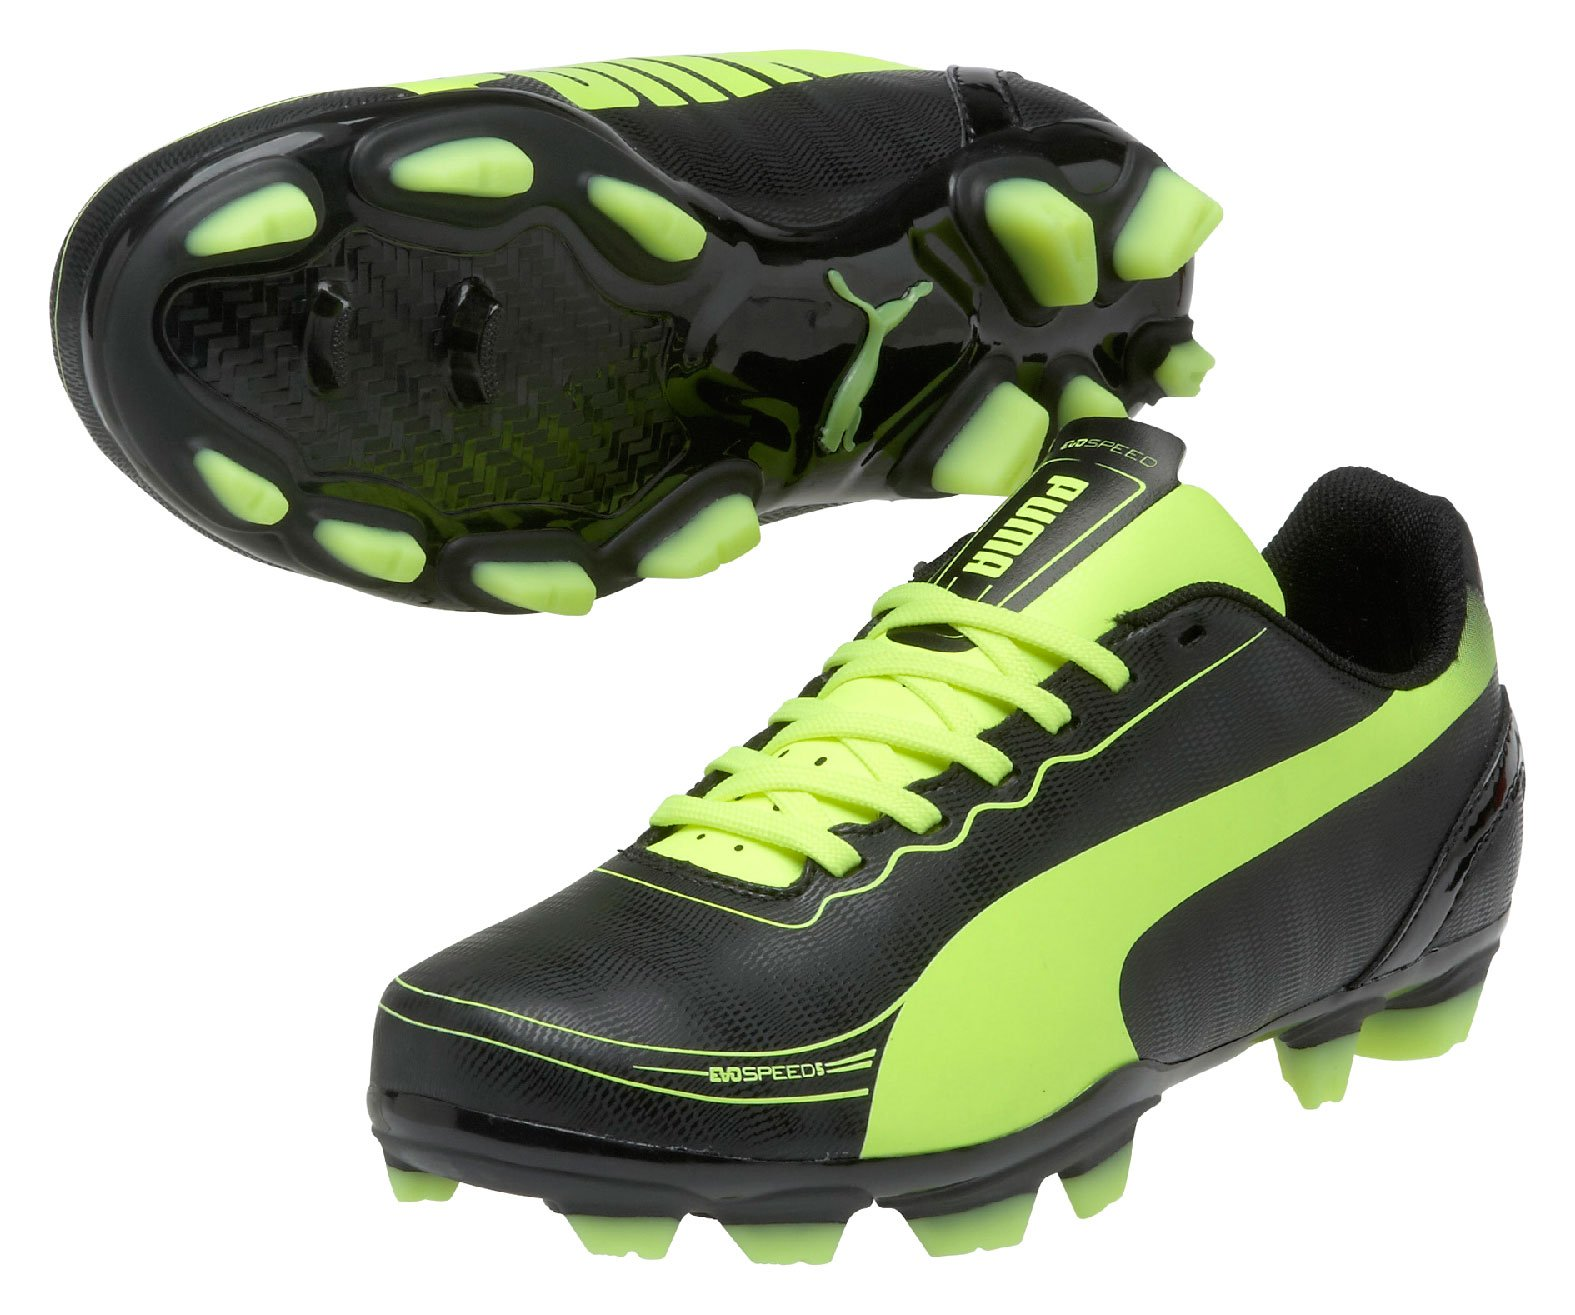 Puma evoSPEED 5.2 FG Junior